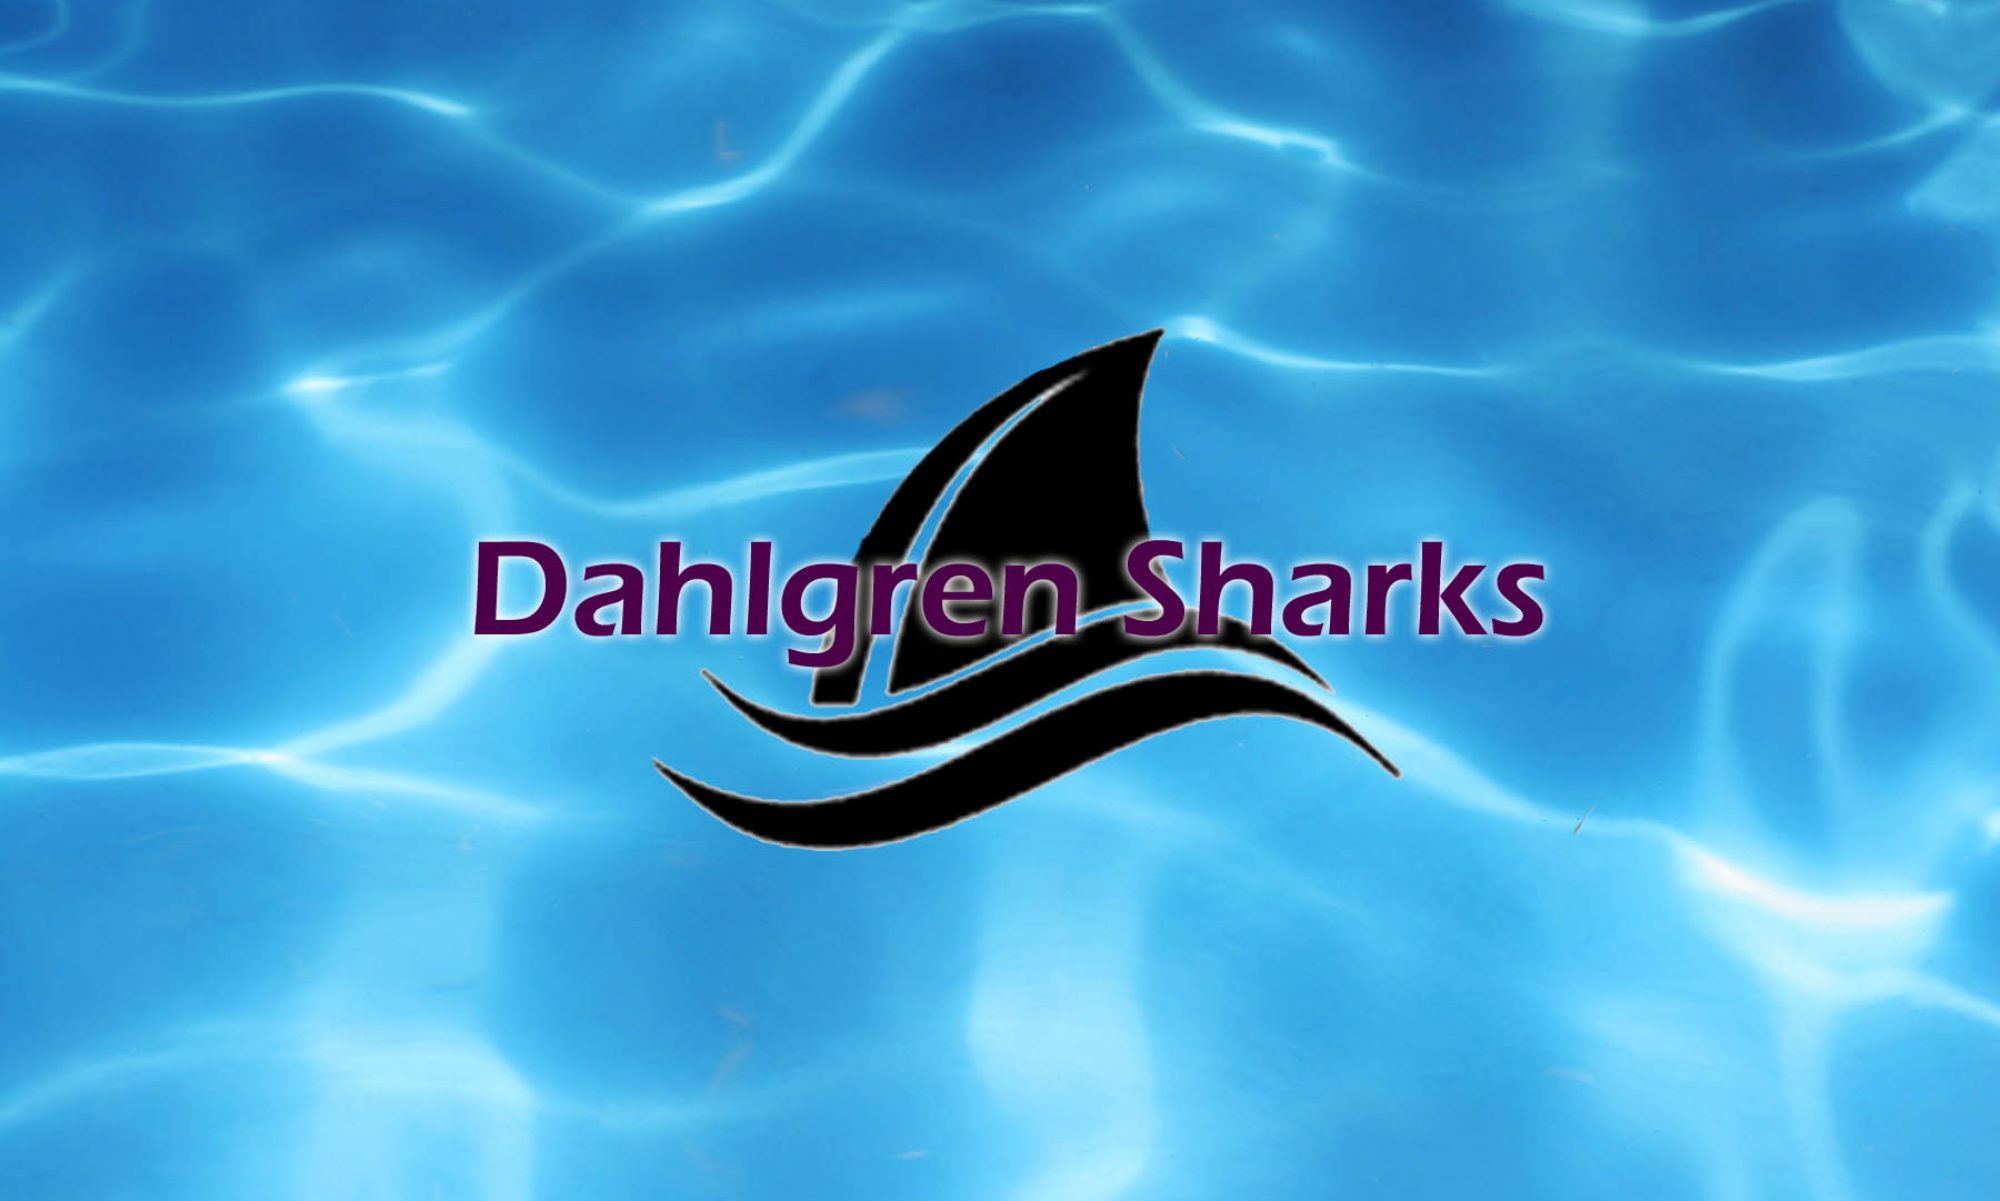 The Dahlgren Sharks